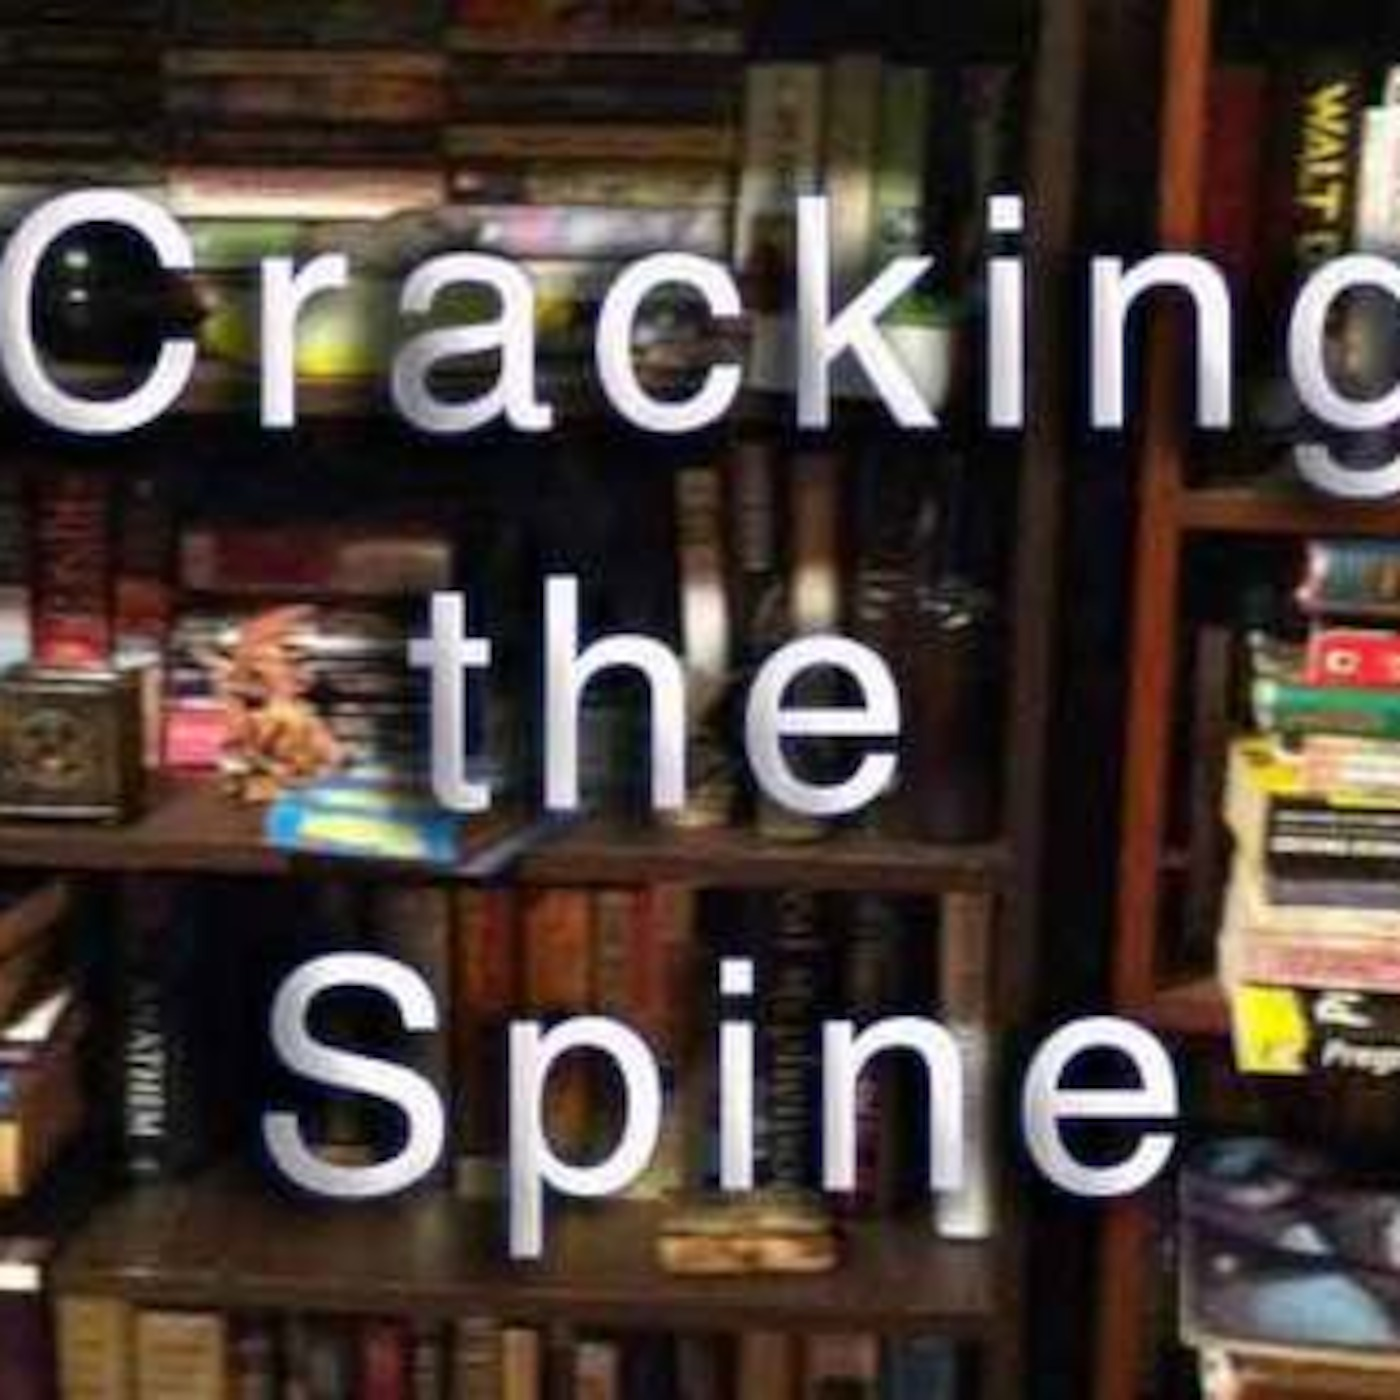 itunes pic Cracking the Spine Podcast by